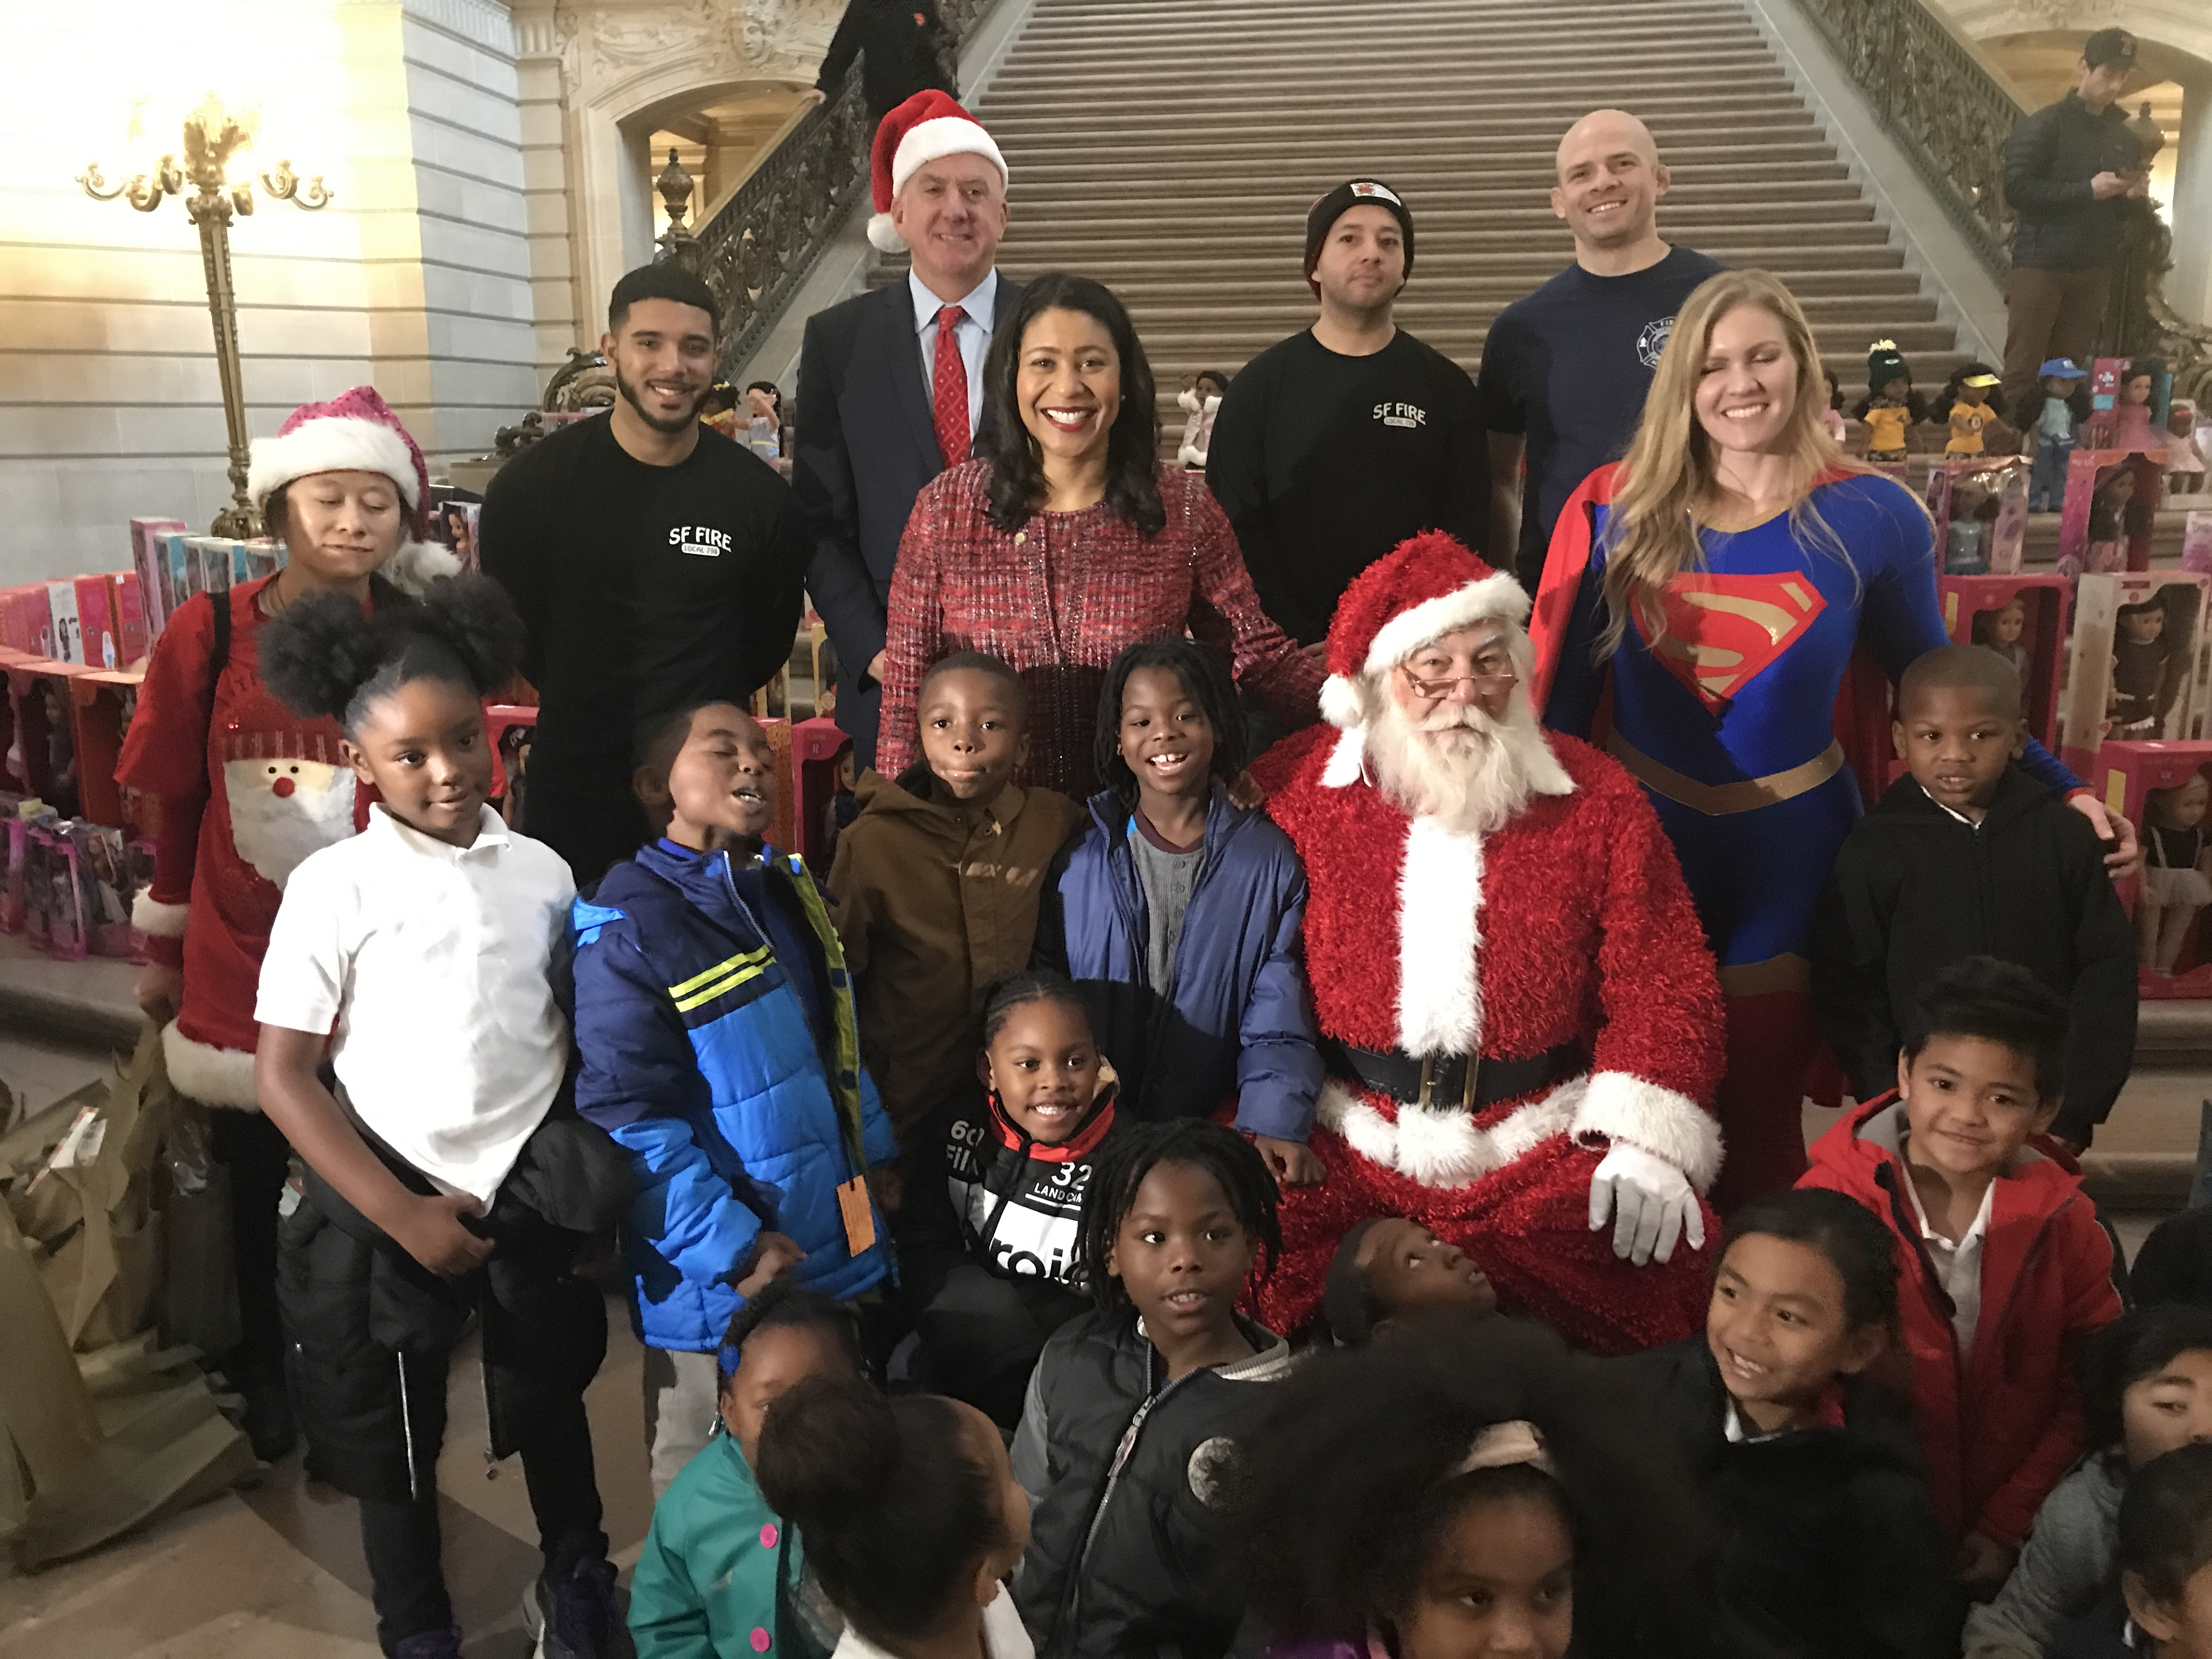 Mayor London Breed at the Annual Book & Toy Festival